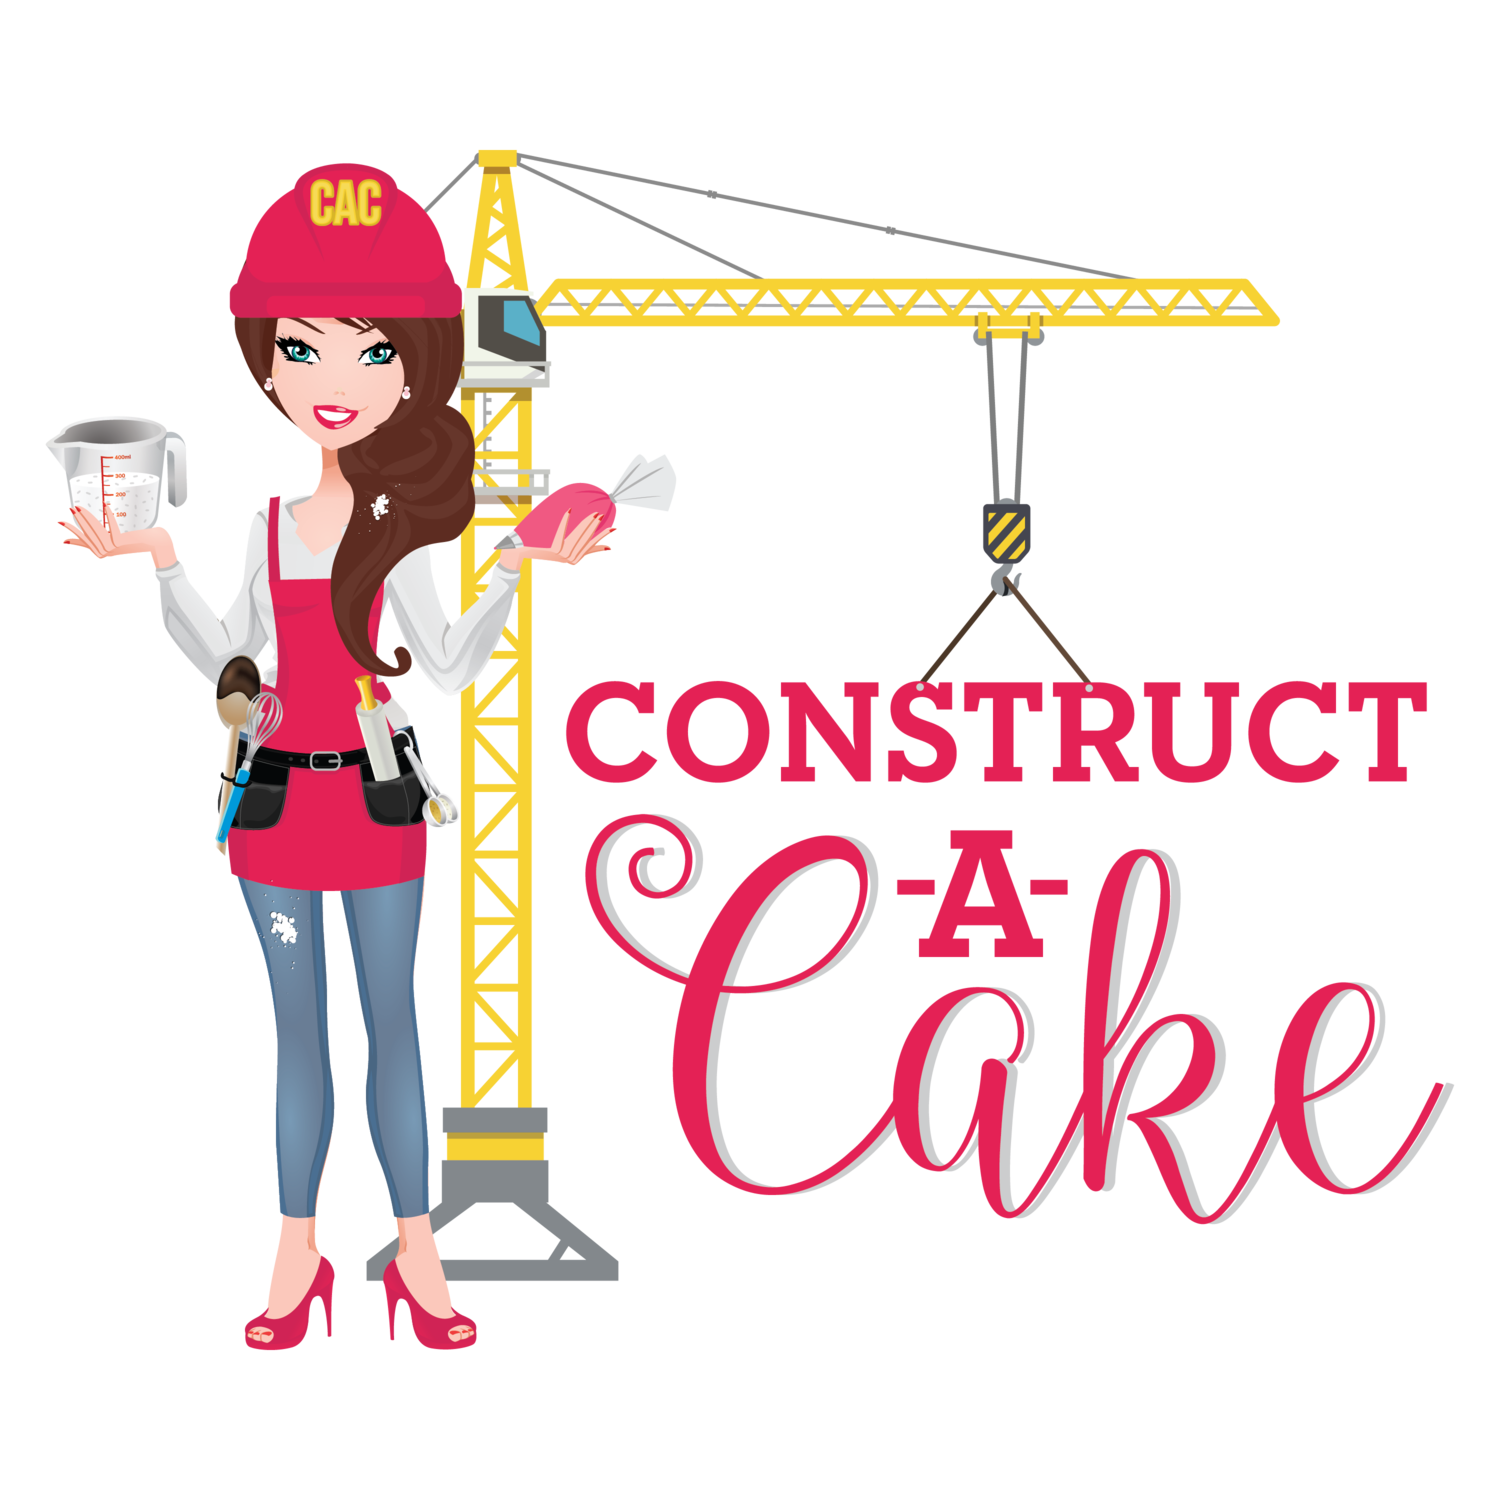 Construct-A-Cake